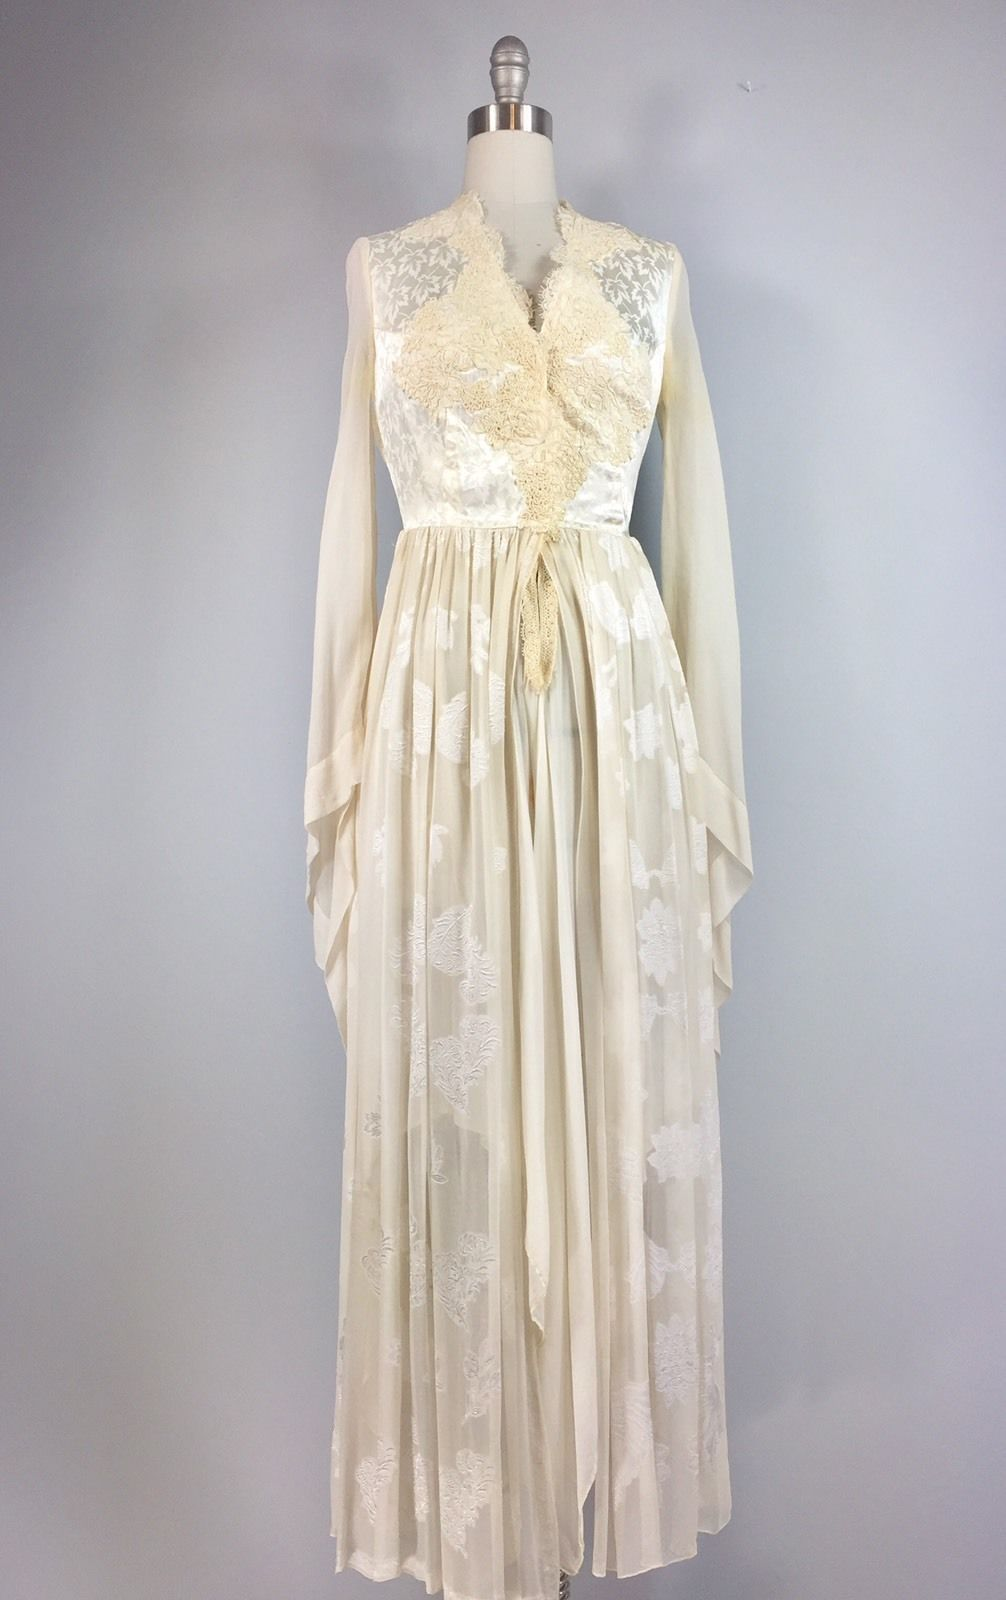 Janine's London 70s Dress Vintage 1970s White wedding